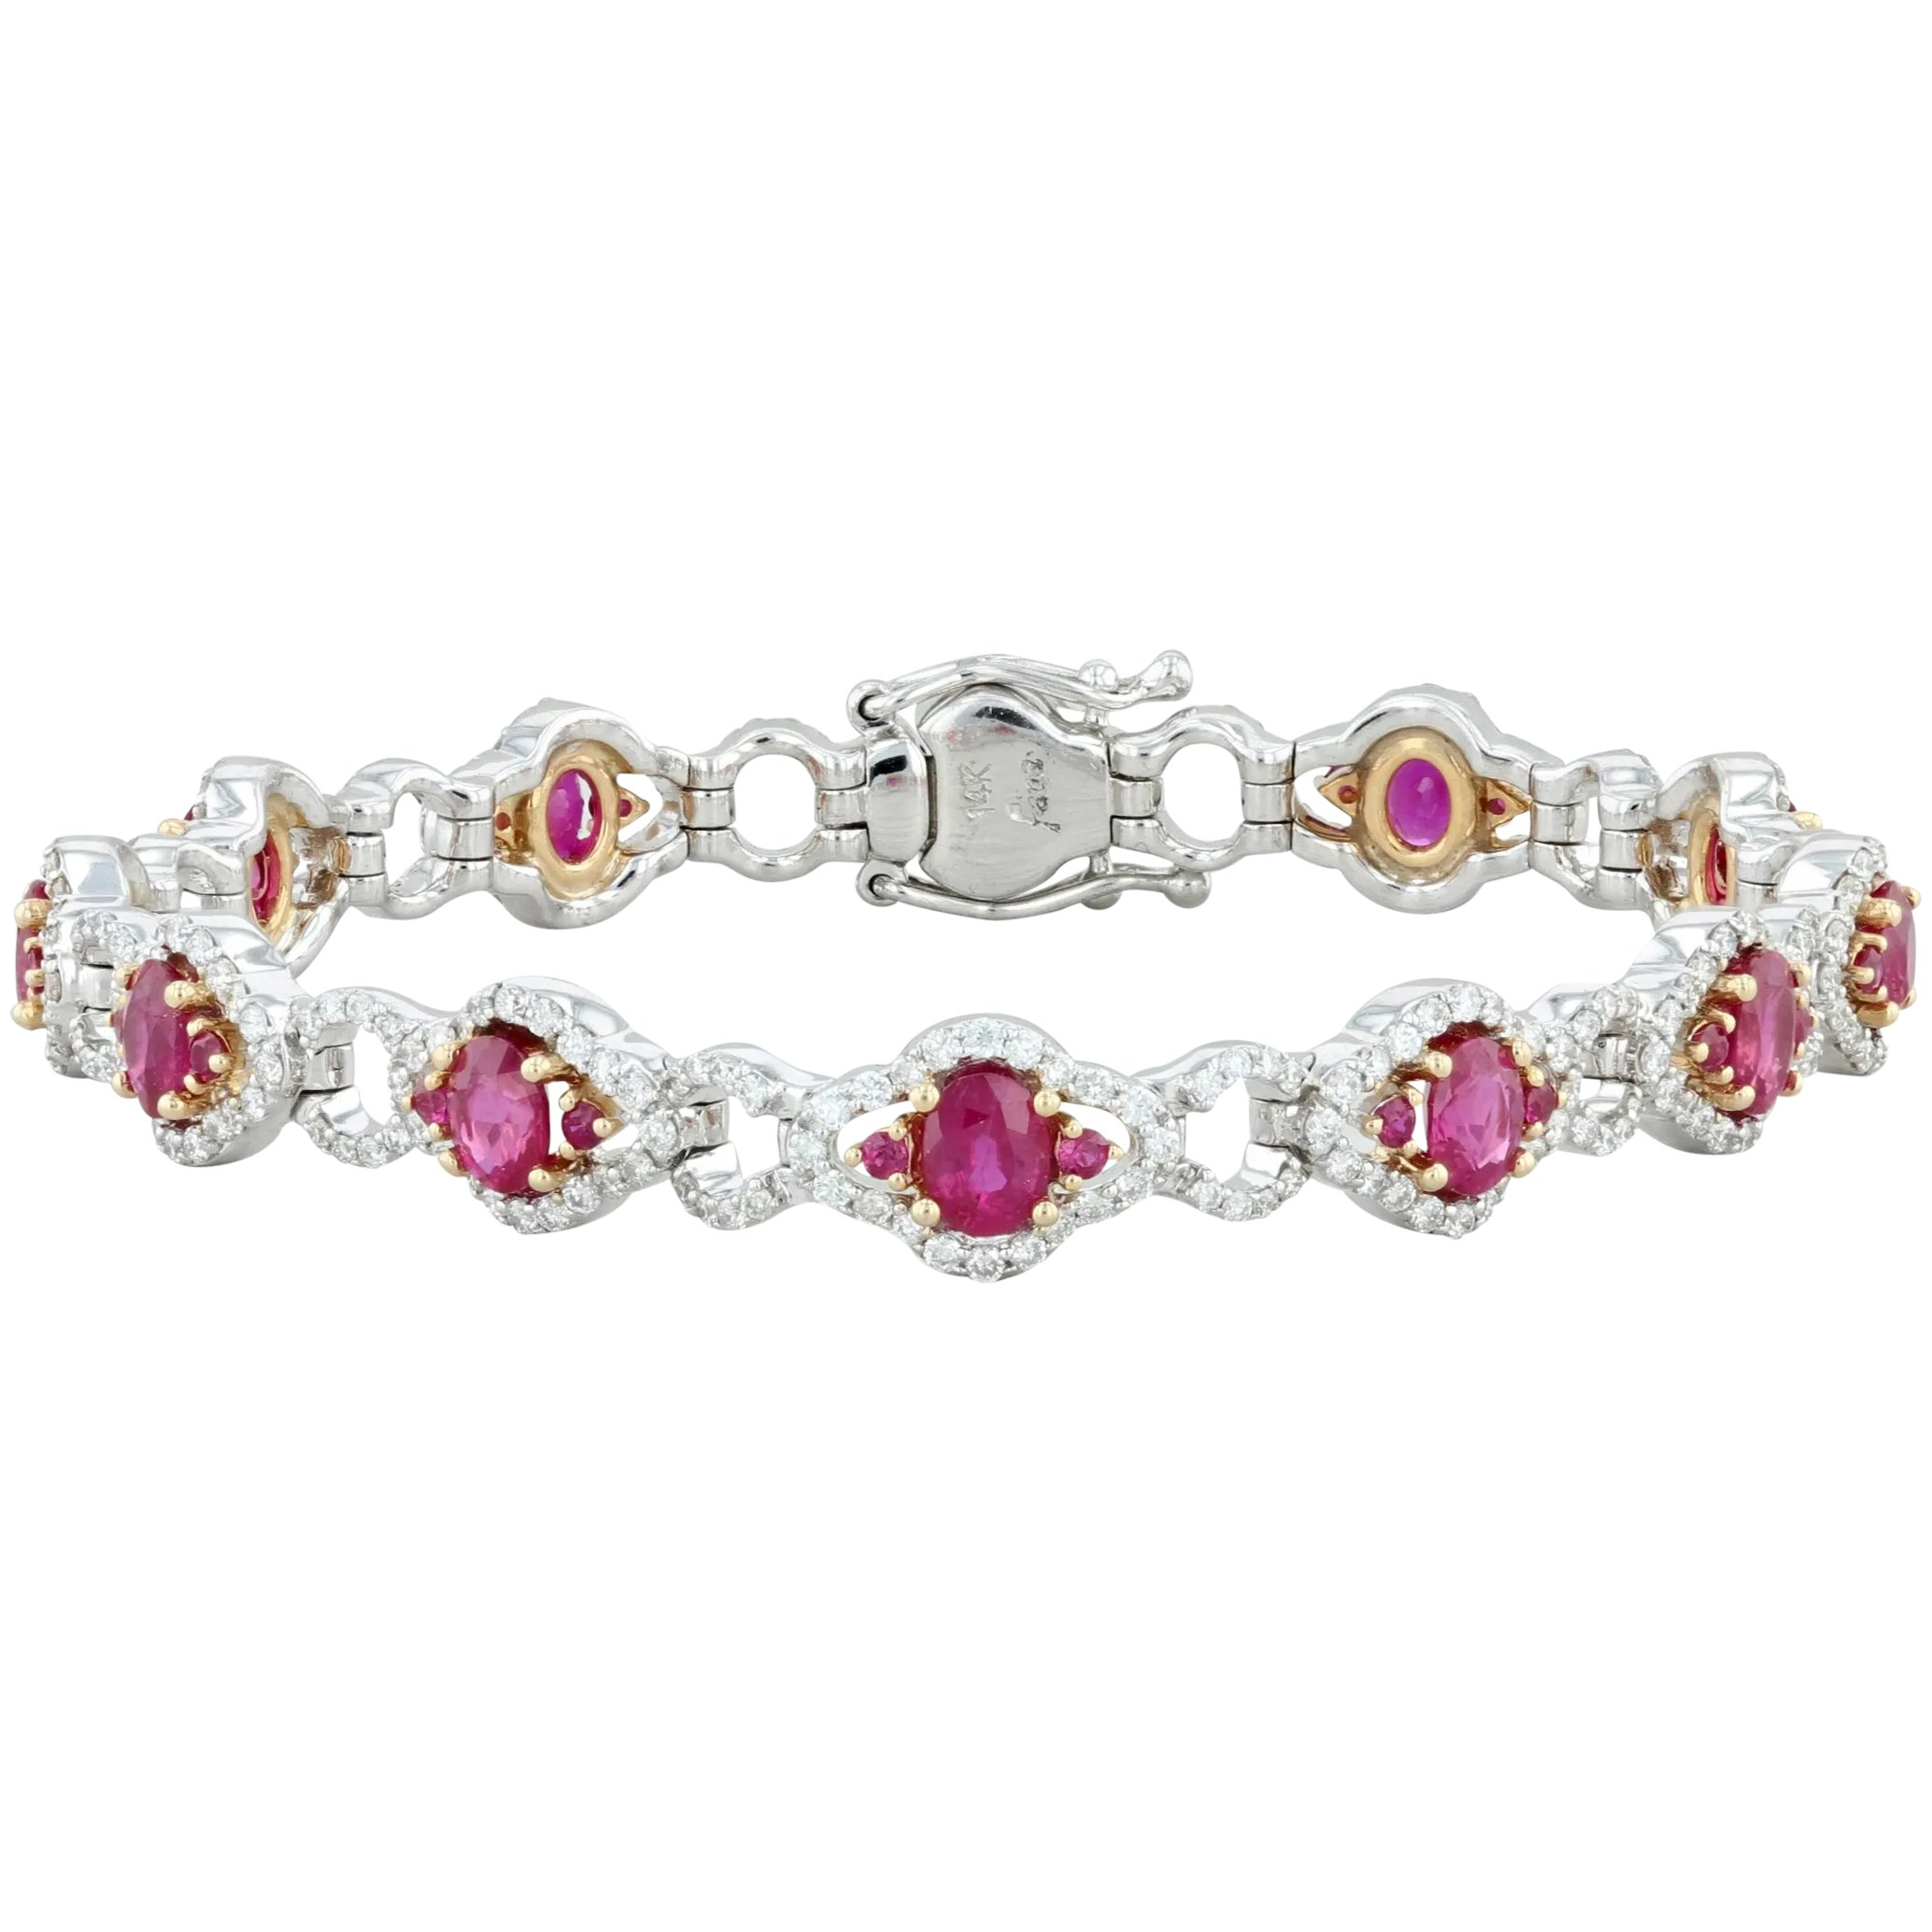 Fine Gemstone Bracelets Gorgeous 4mm Ruby Tennis Bracelet 14kt White Gold Brand New Item Jewelry Watches